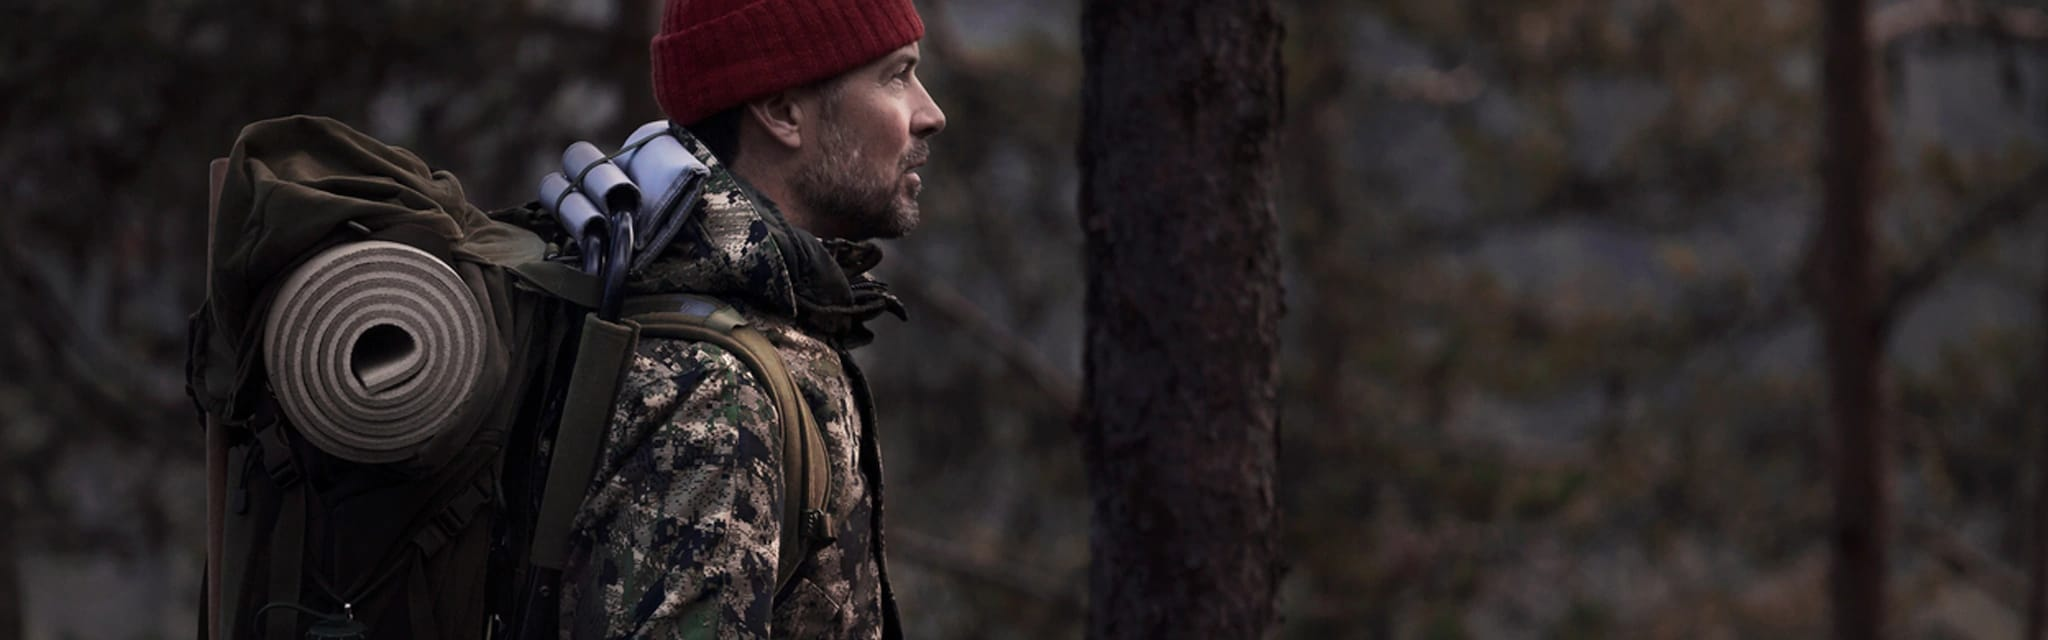 Prepper lifestyle - man with camping backpack in woods